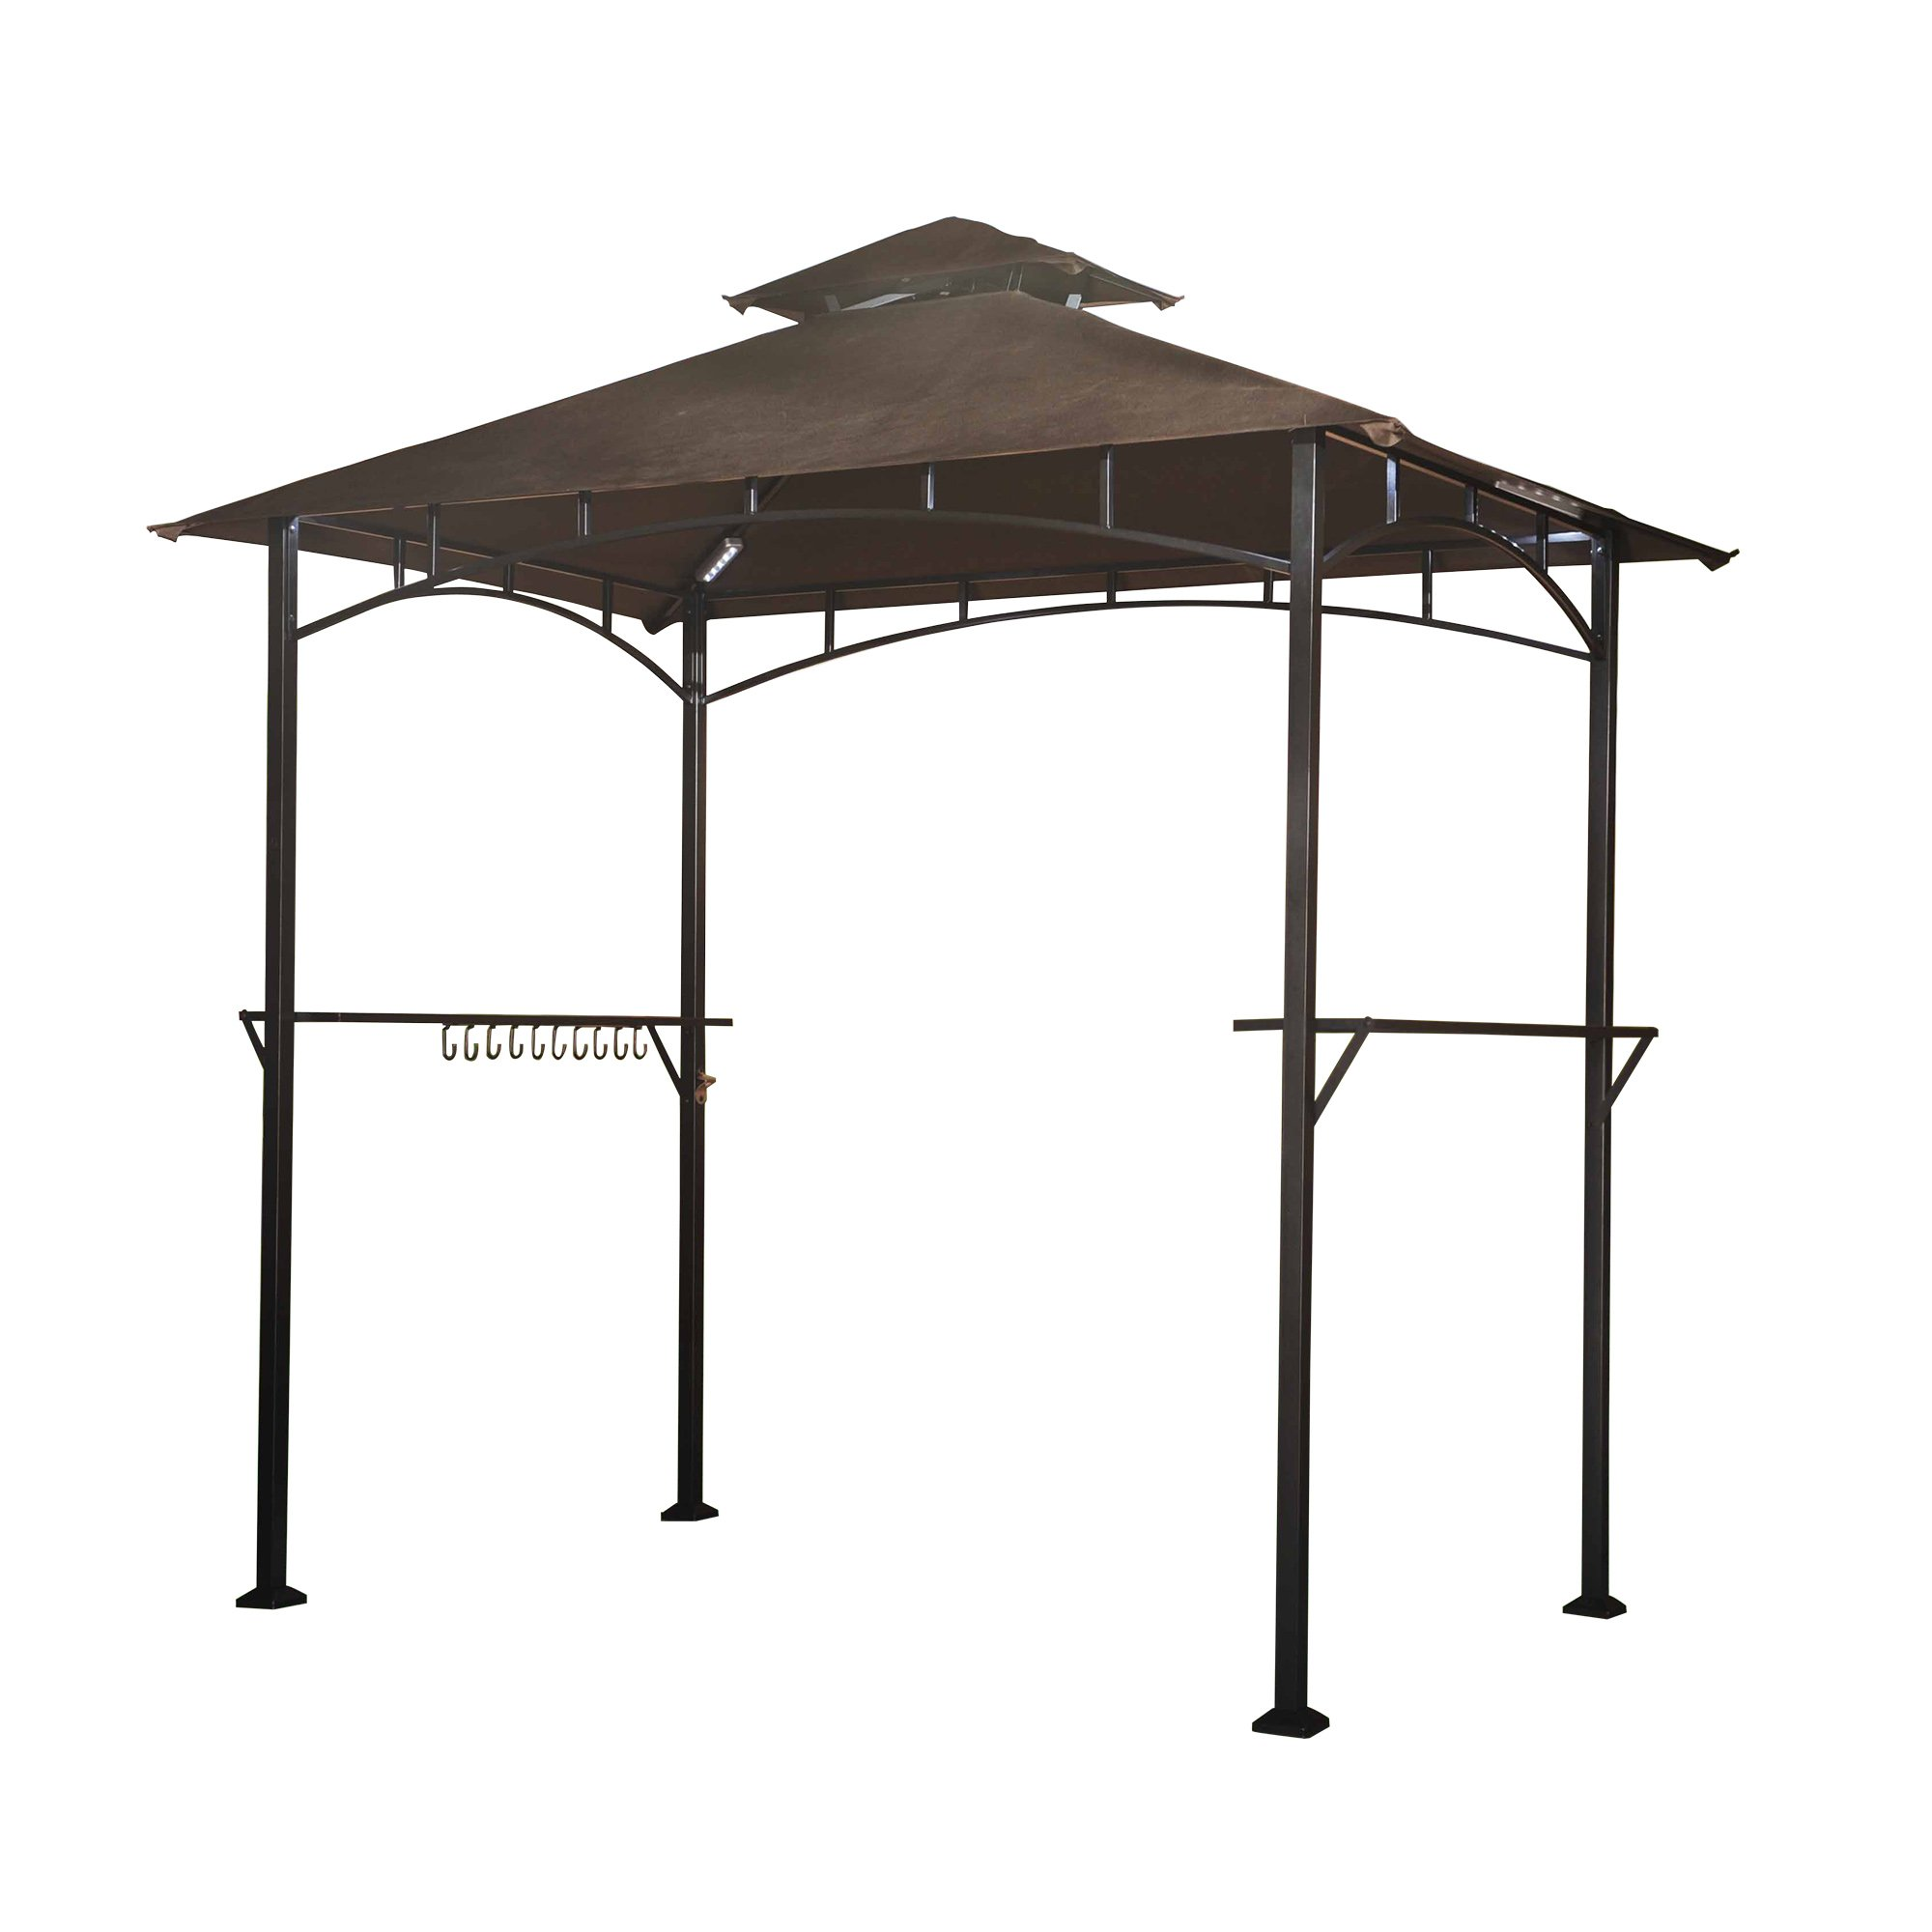 Sunjoy 8'x 5' Soft Top Grill Gazebo with 4pcs LED